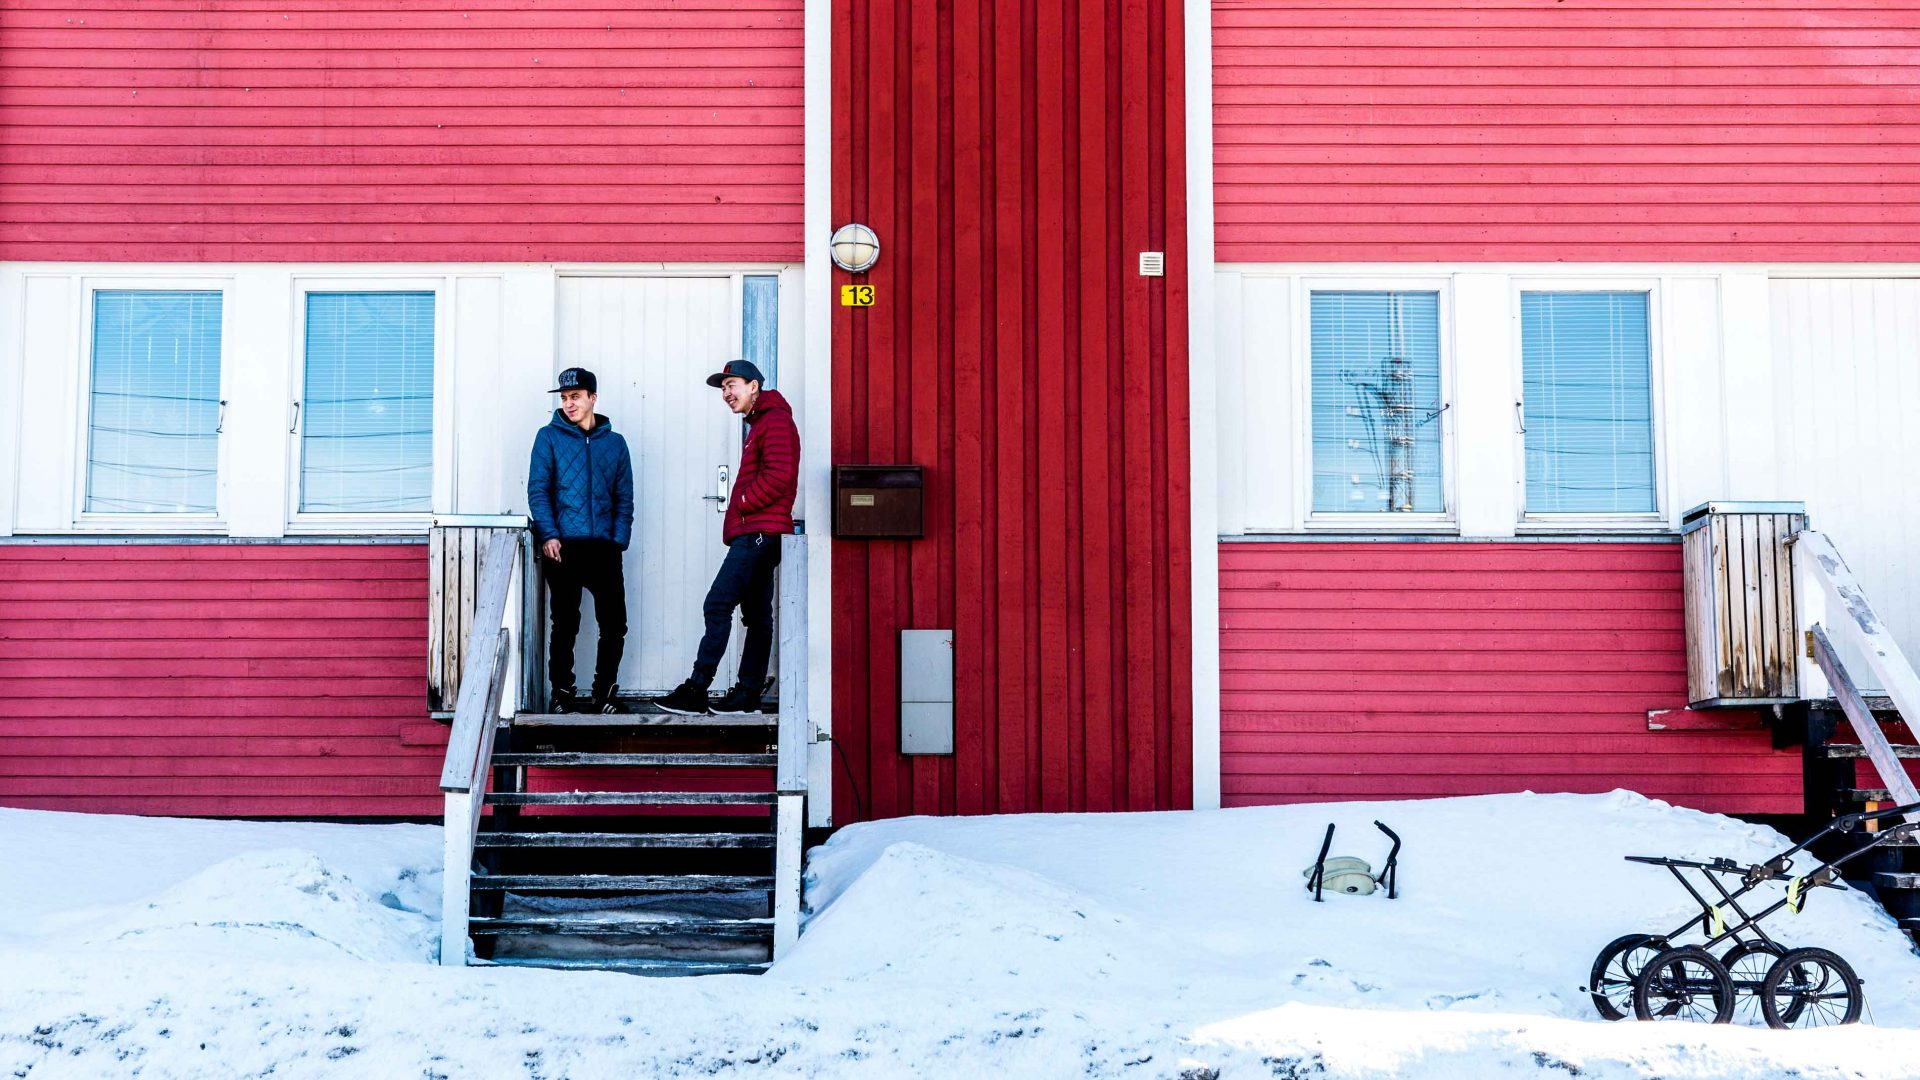 Inuit teenagers hanging out in front of one of Ilulissat's colorful apartment blocks.